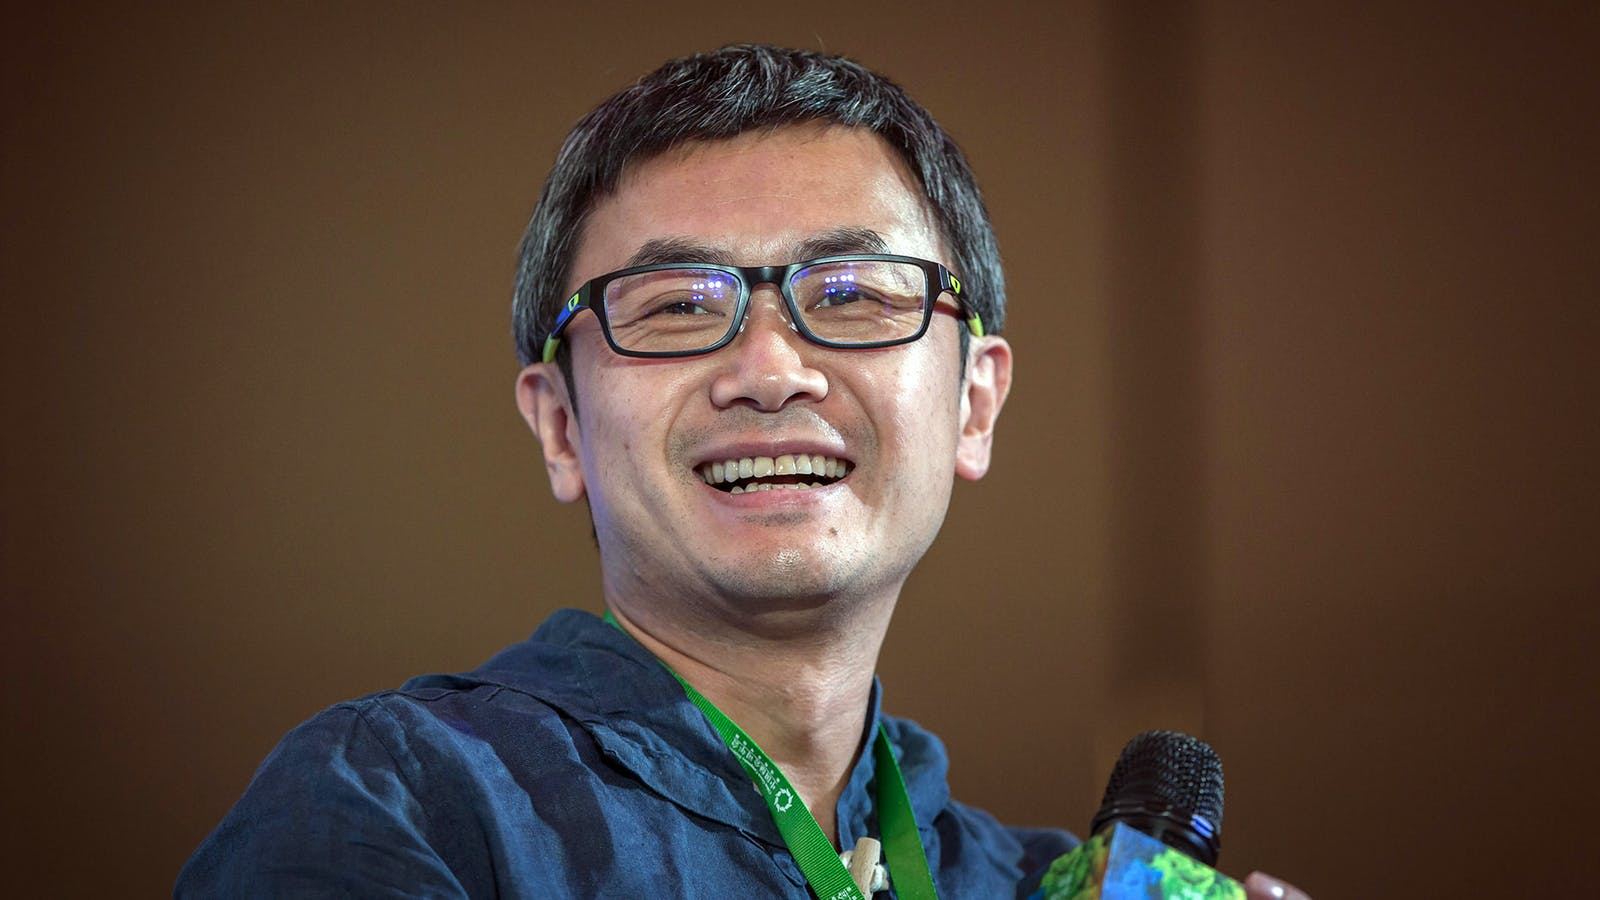 Ucommune founder Mao Daqing. Photo by Bloomberg.